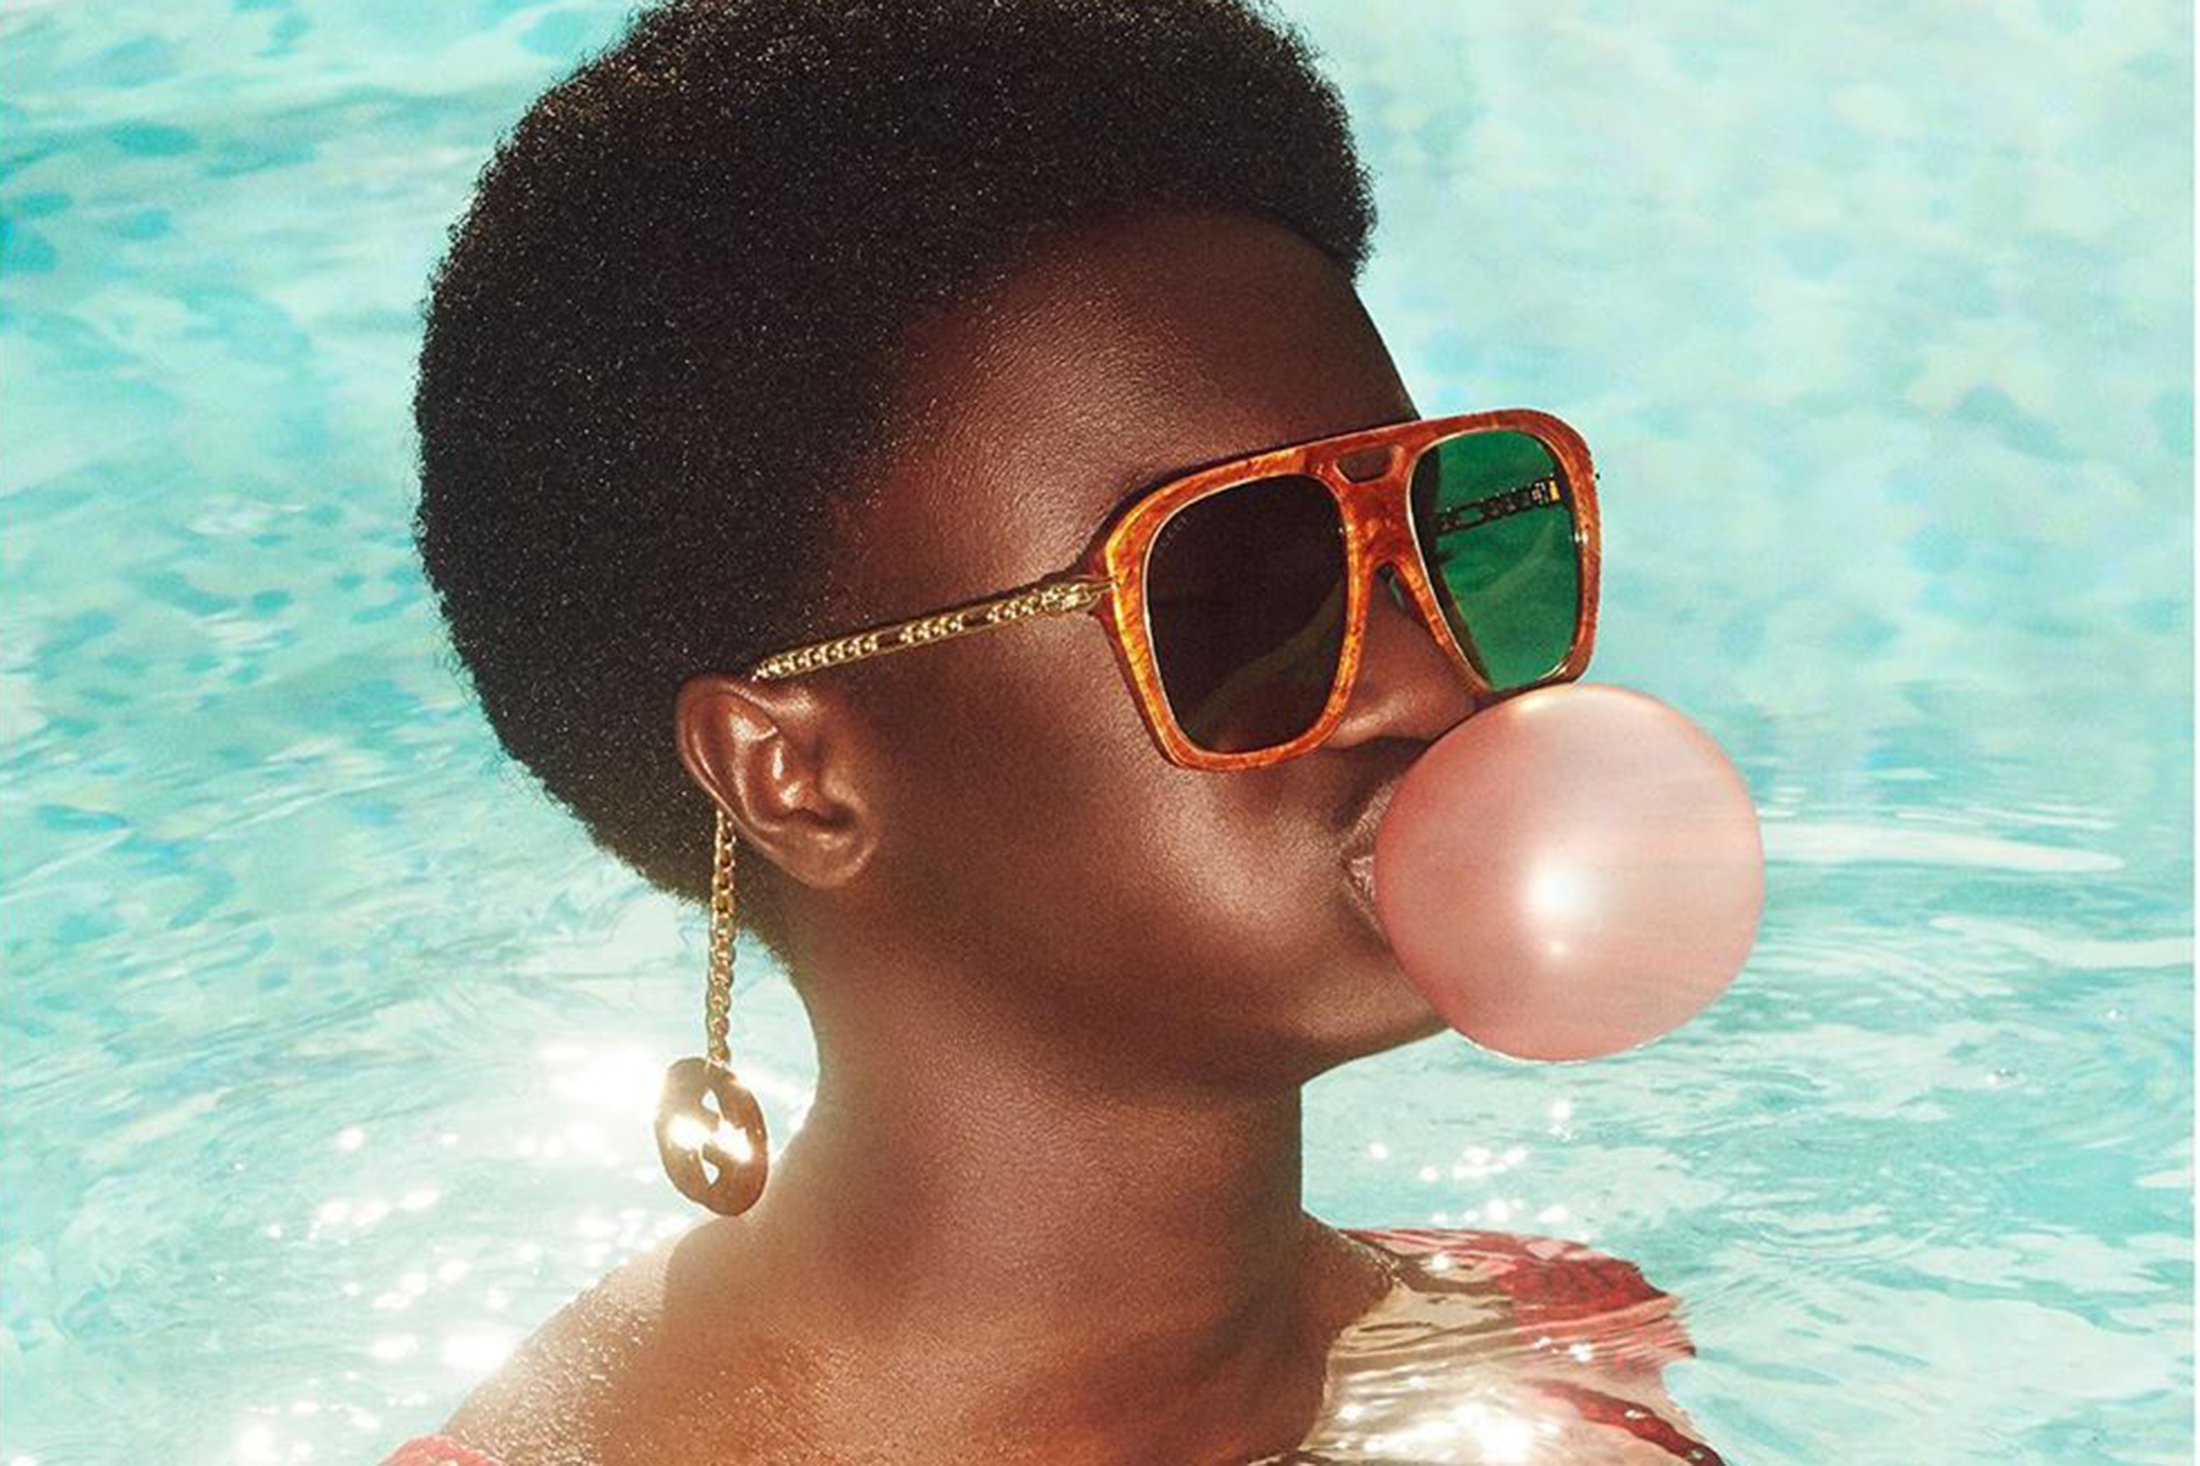 Gucci Eyewear Spring 2020 Fashion Ad Campaign Photos